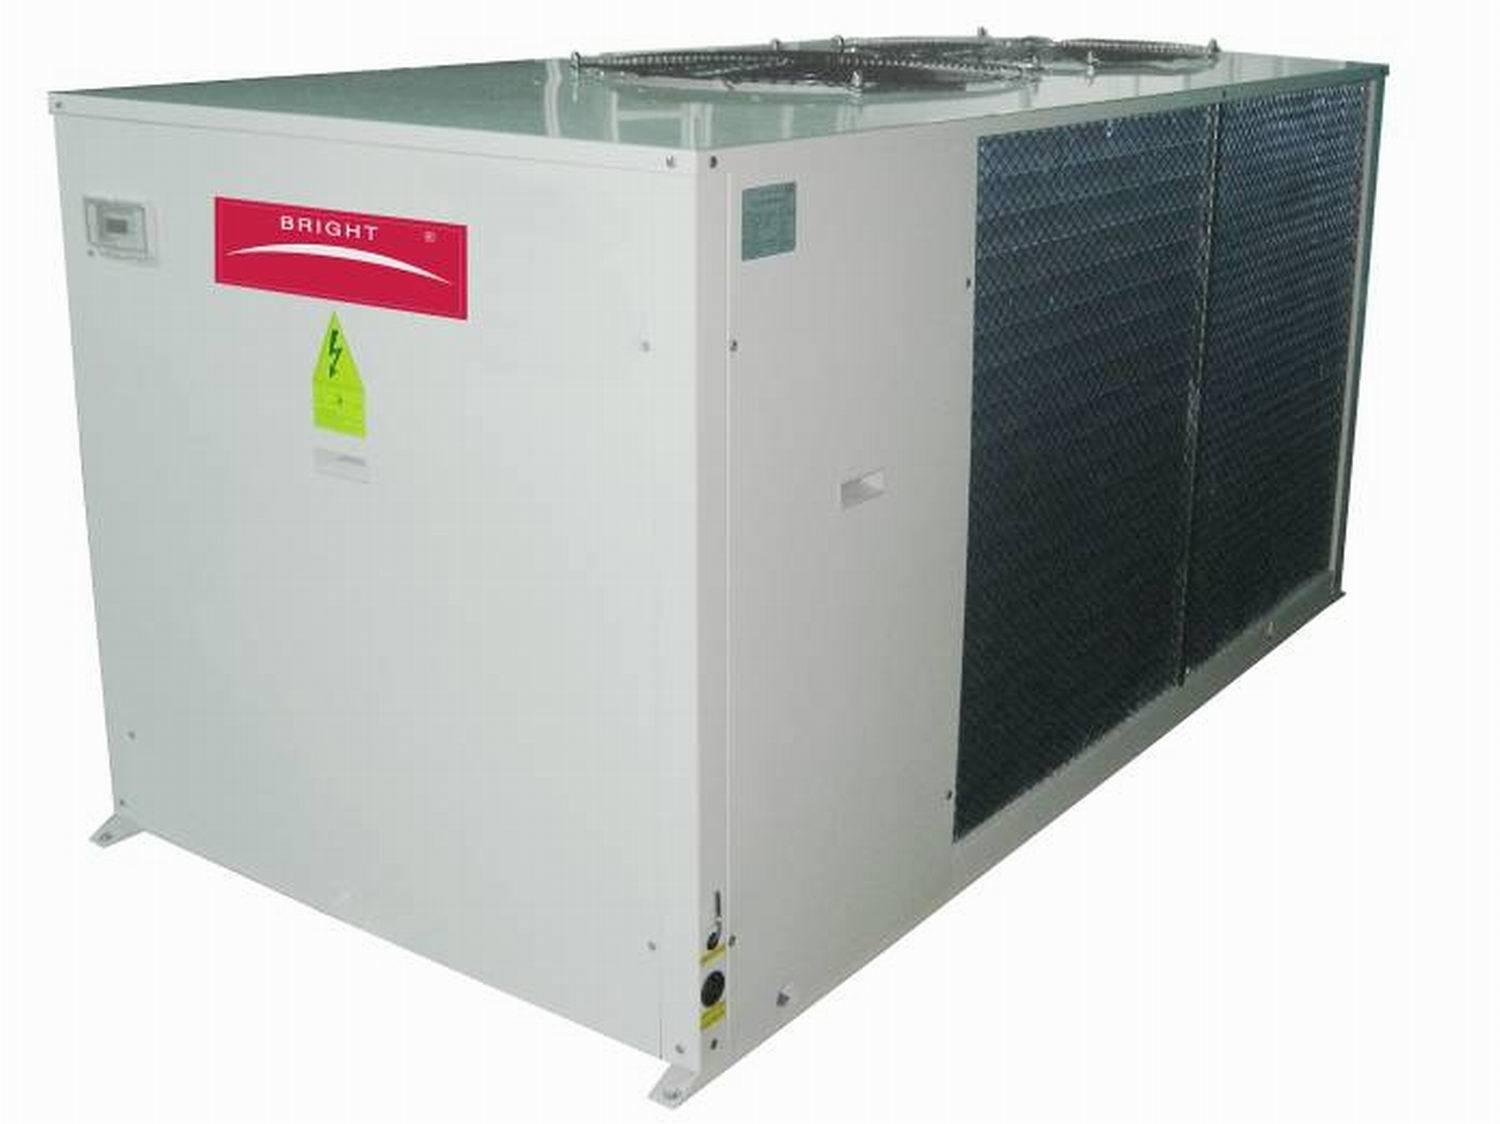 Water chiller liquid chillers water cooled sea water chiller #B11A3C